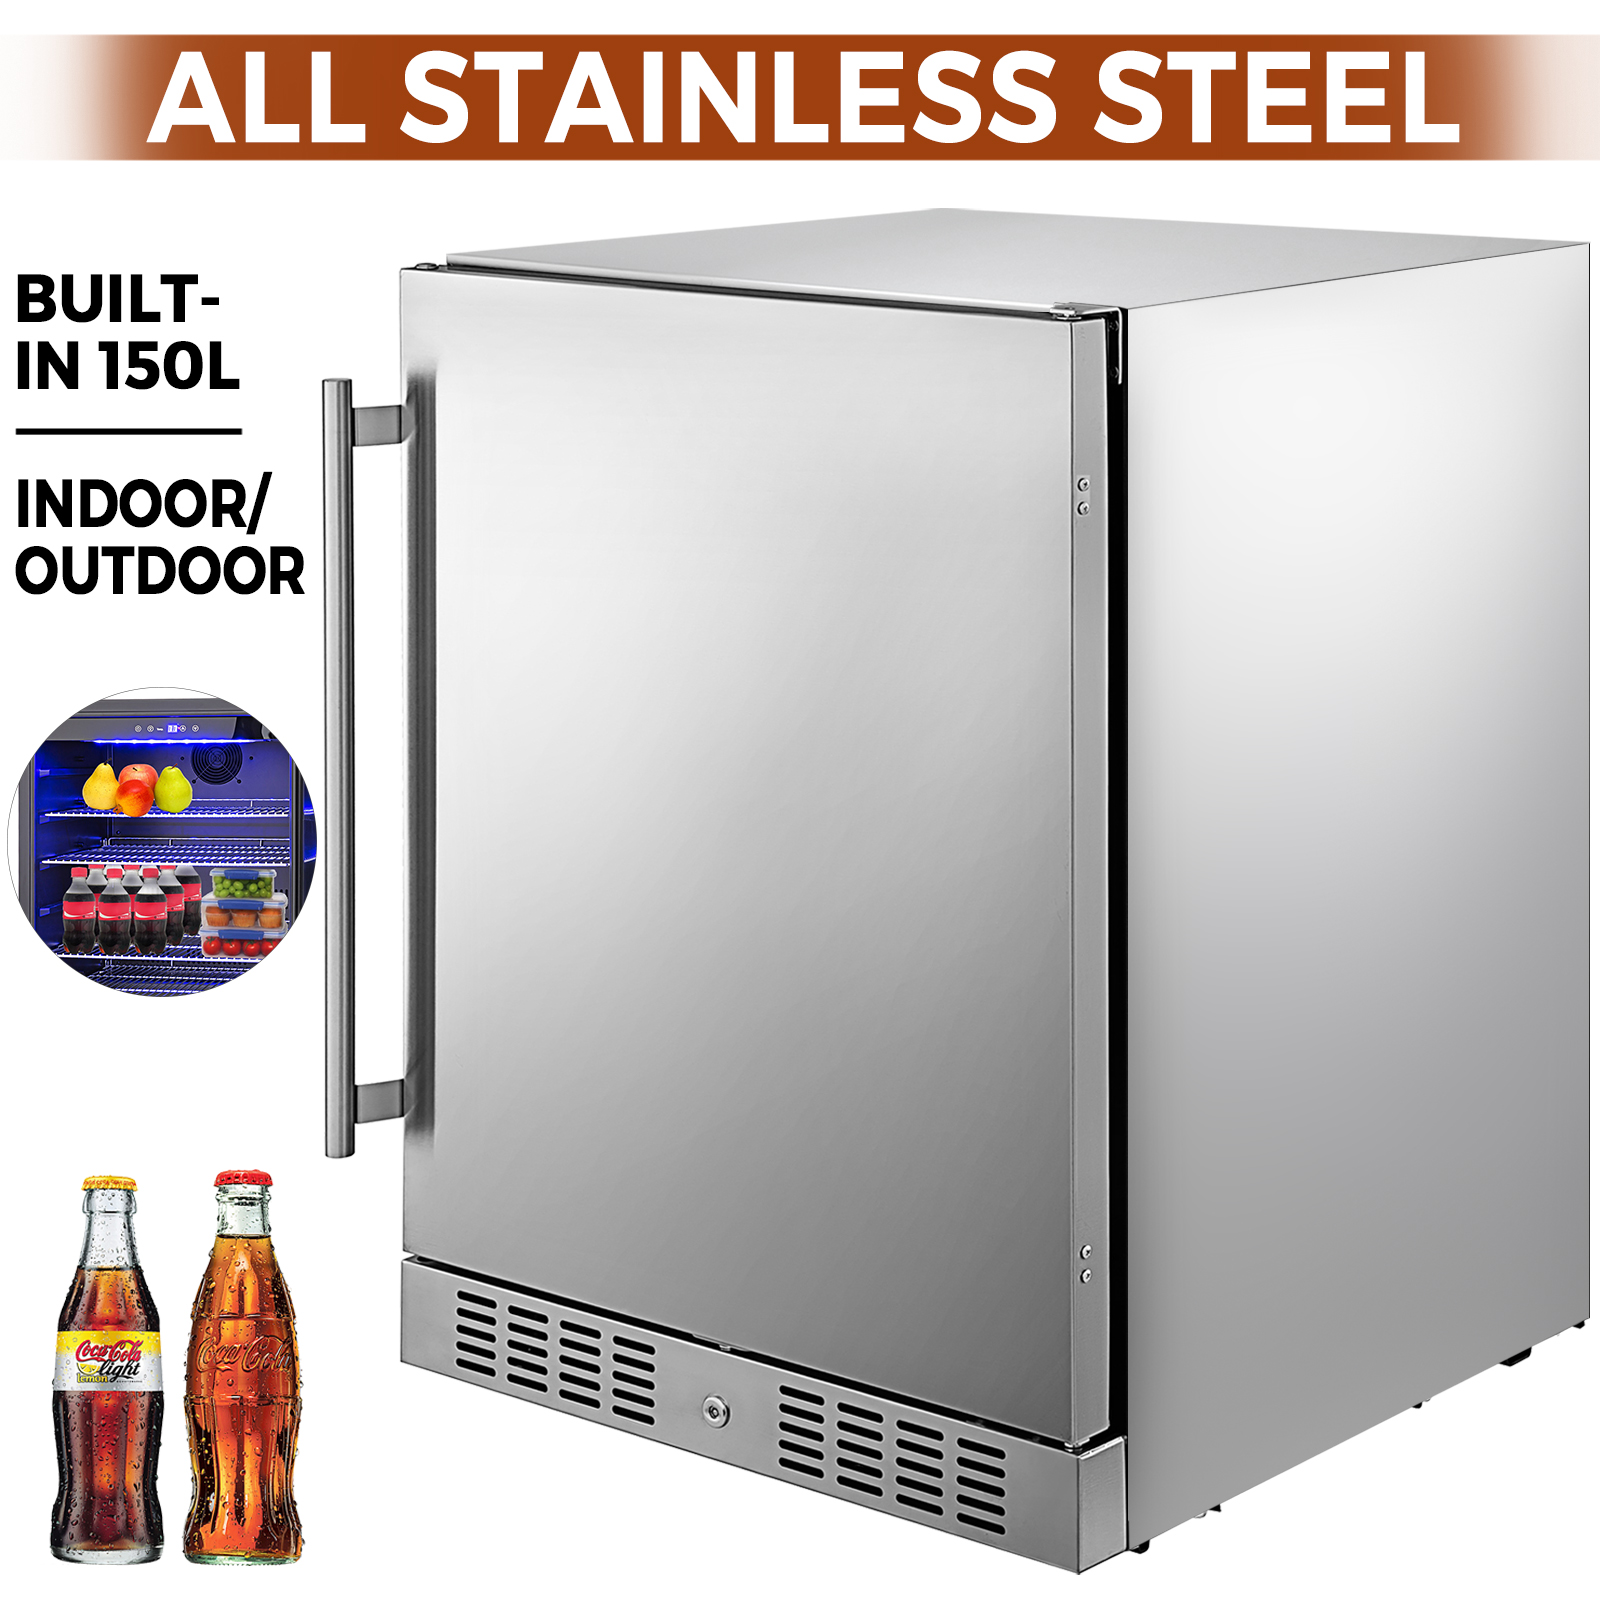 Built-in Beverage Cooler 304 Stainless Steel 5.3 cu. ft. Chrome Plated Shelf